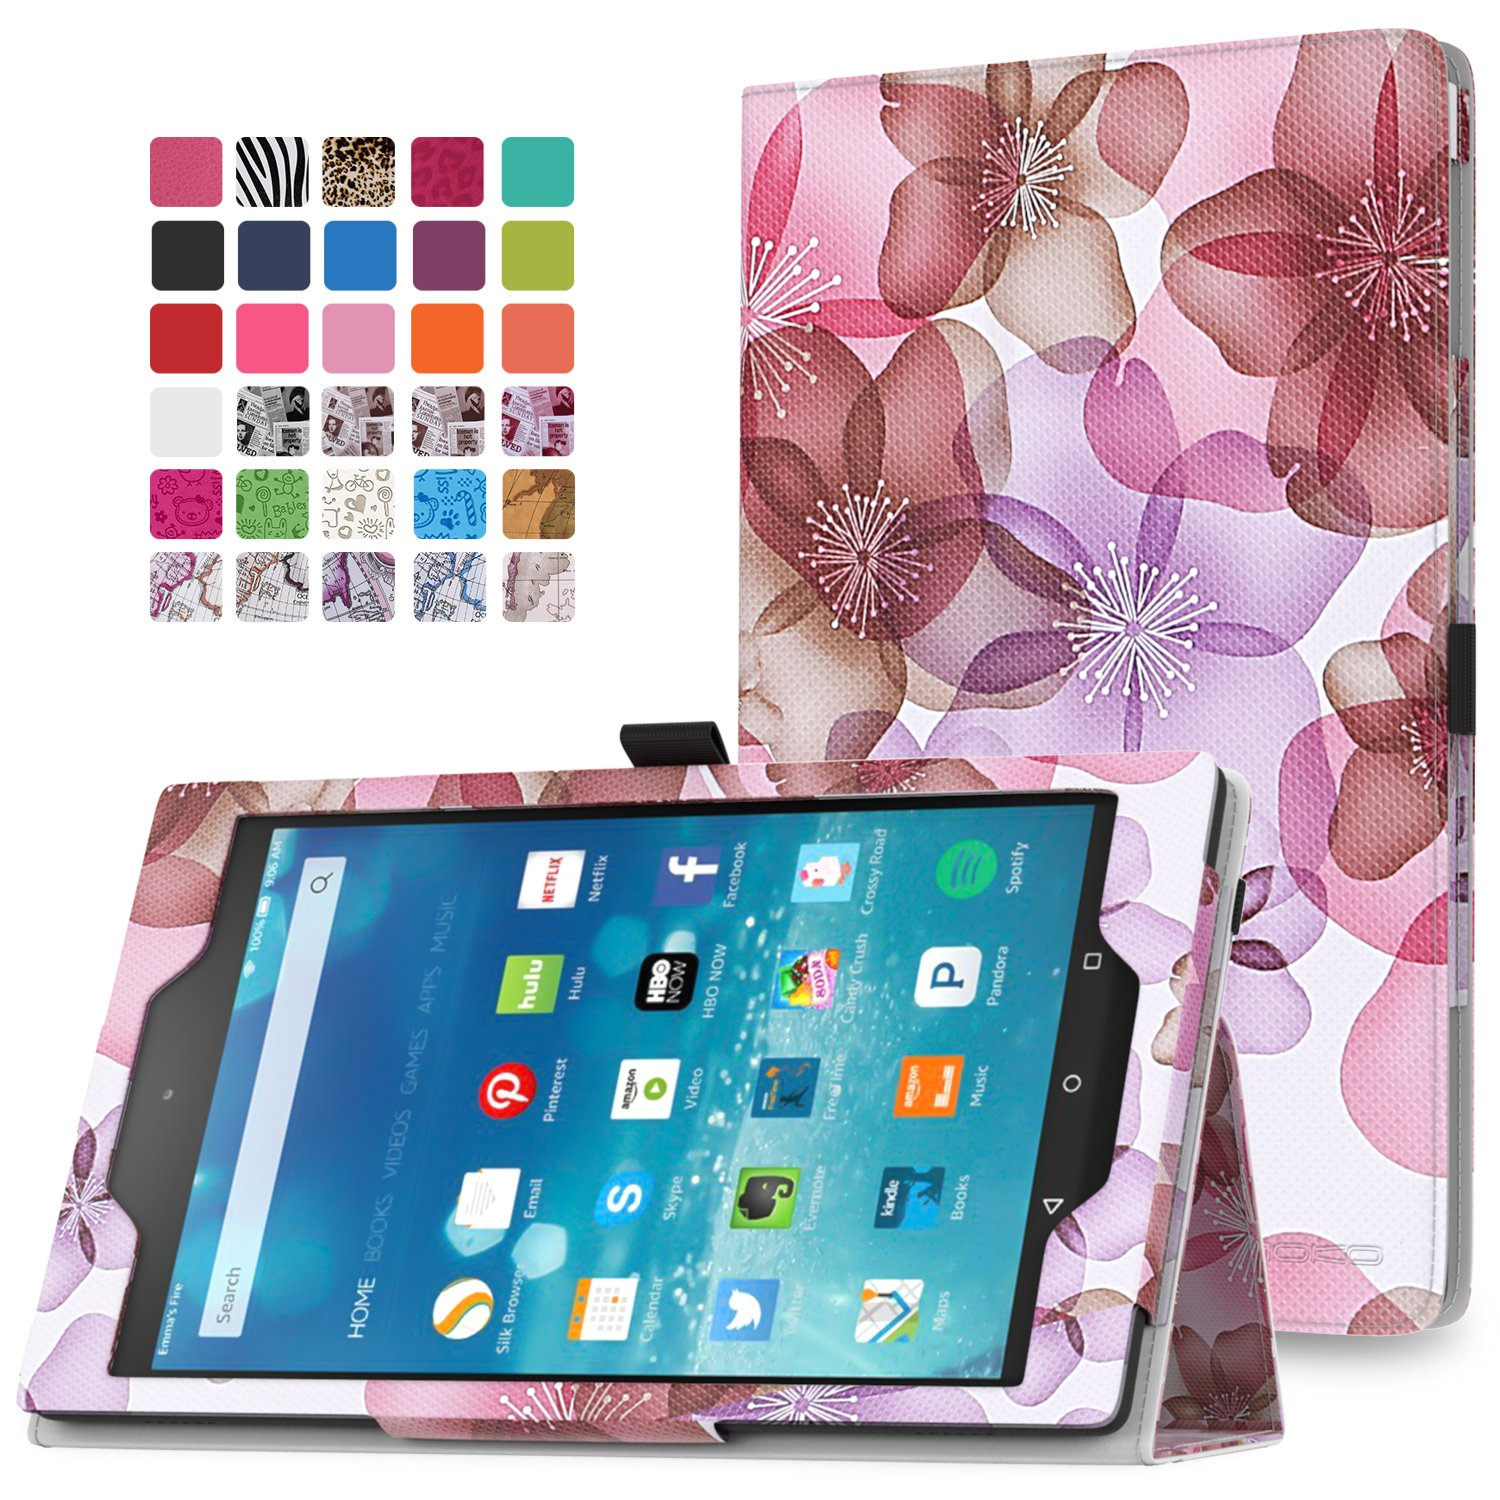 MoKo Fire HD 8 2015 Case - Slim Folding Cover with Auto Wake / Sleep for Amazon Kindle Fire HD 8 Inch Display Tablet (2015 Release Only), Floral PURPLE